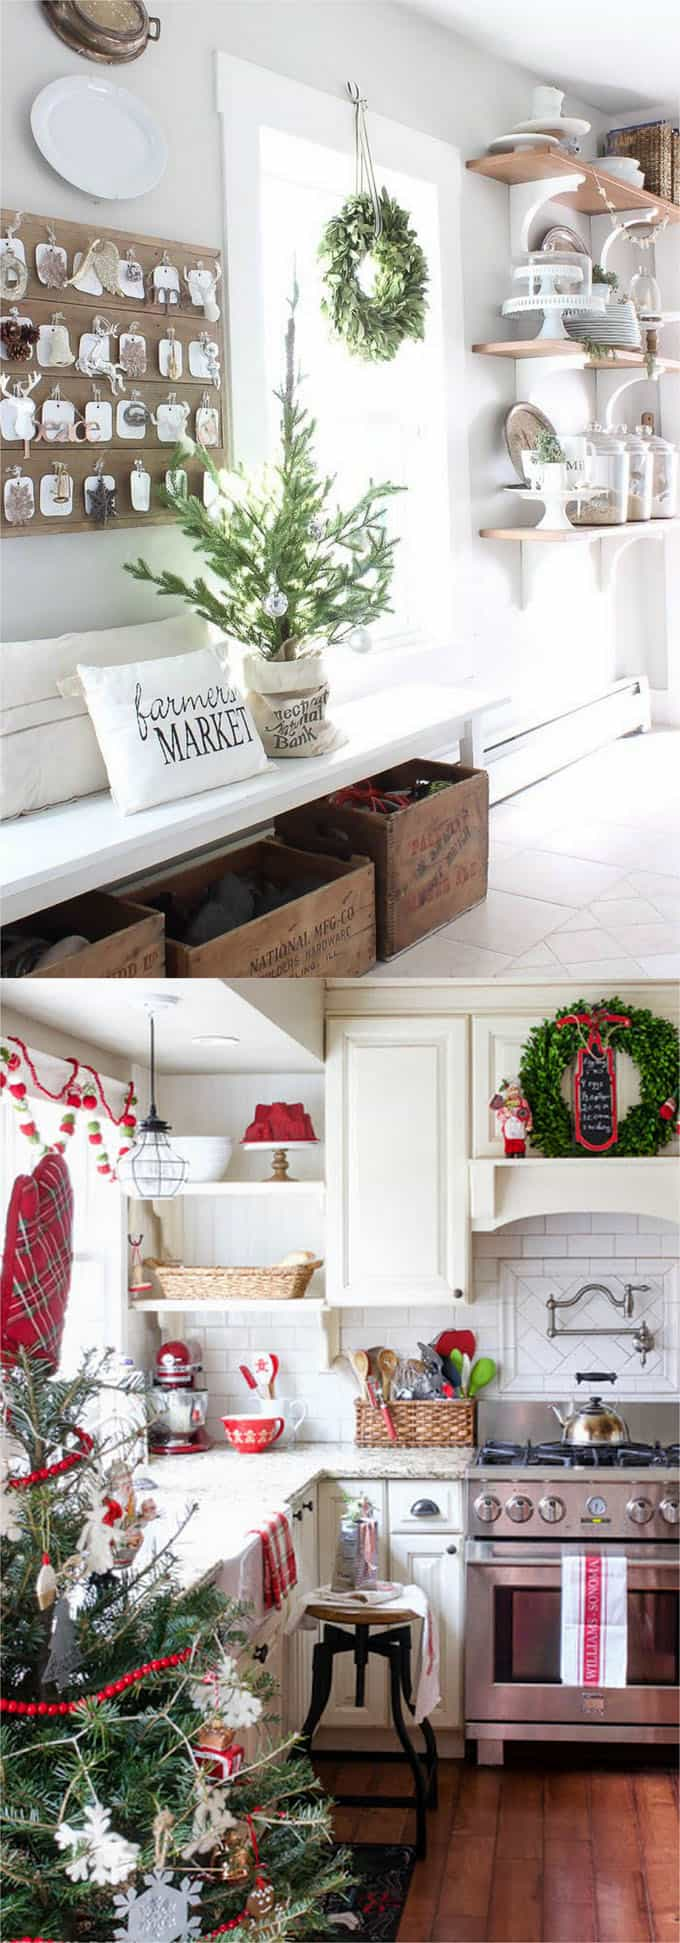 Notice The Beautiful Details In These Two Christmas Kitchens : Wreaths On  The Windows And Cabinet Doors, White And Red Kitchen Towels, Small Piece Of  ...